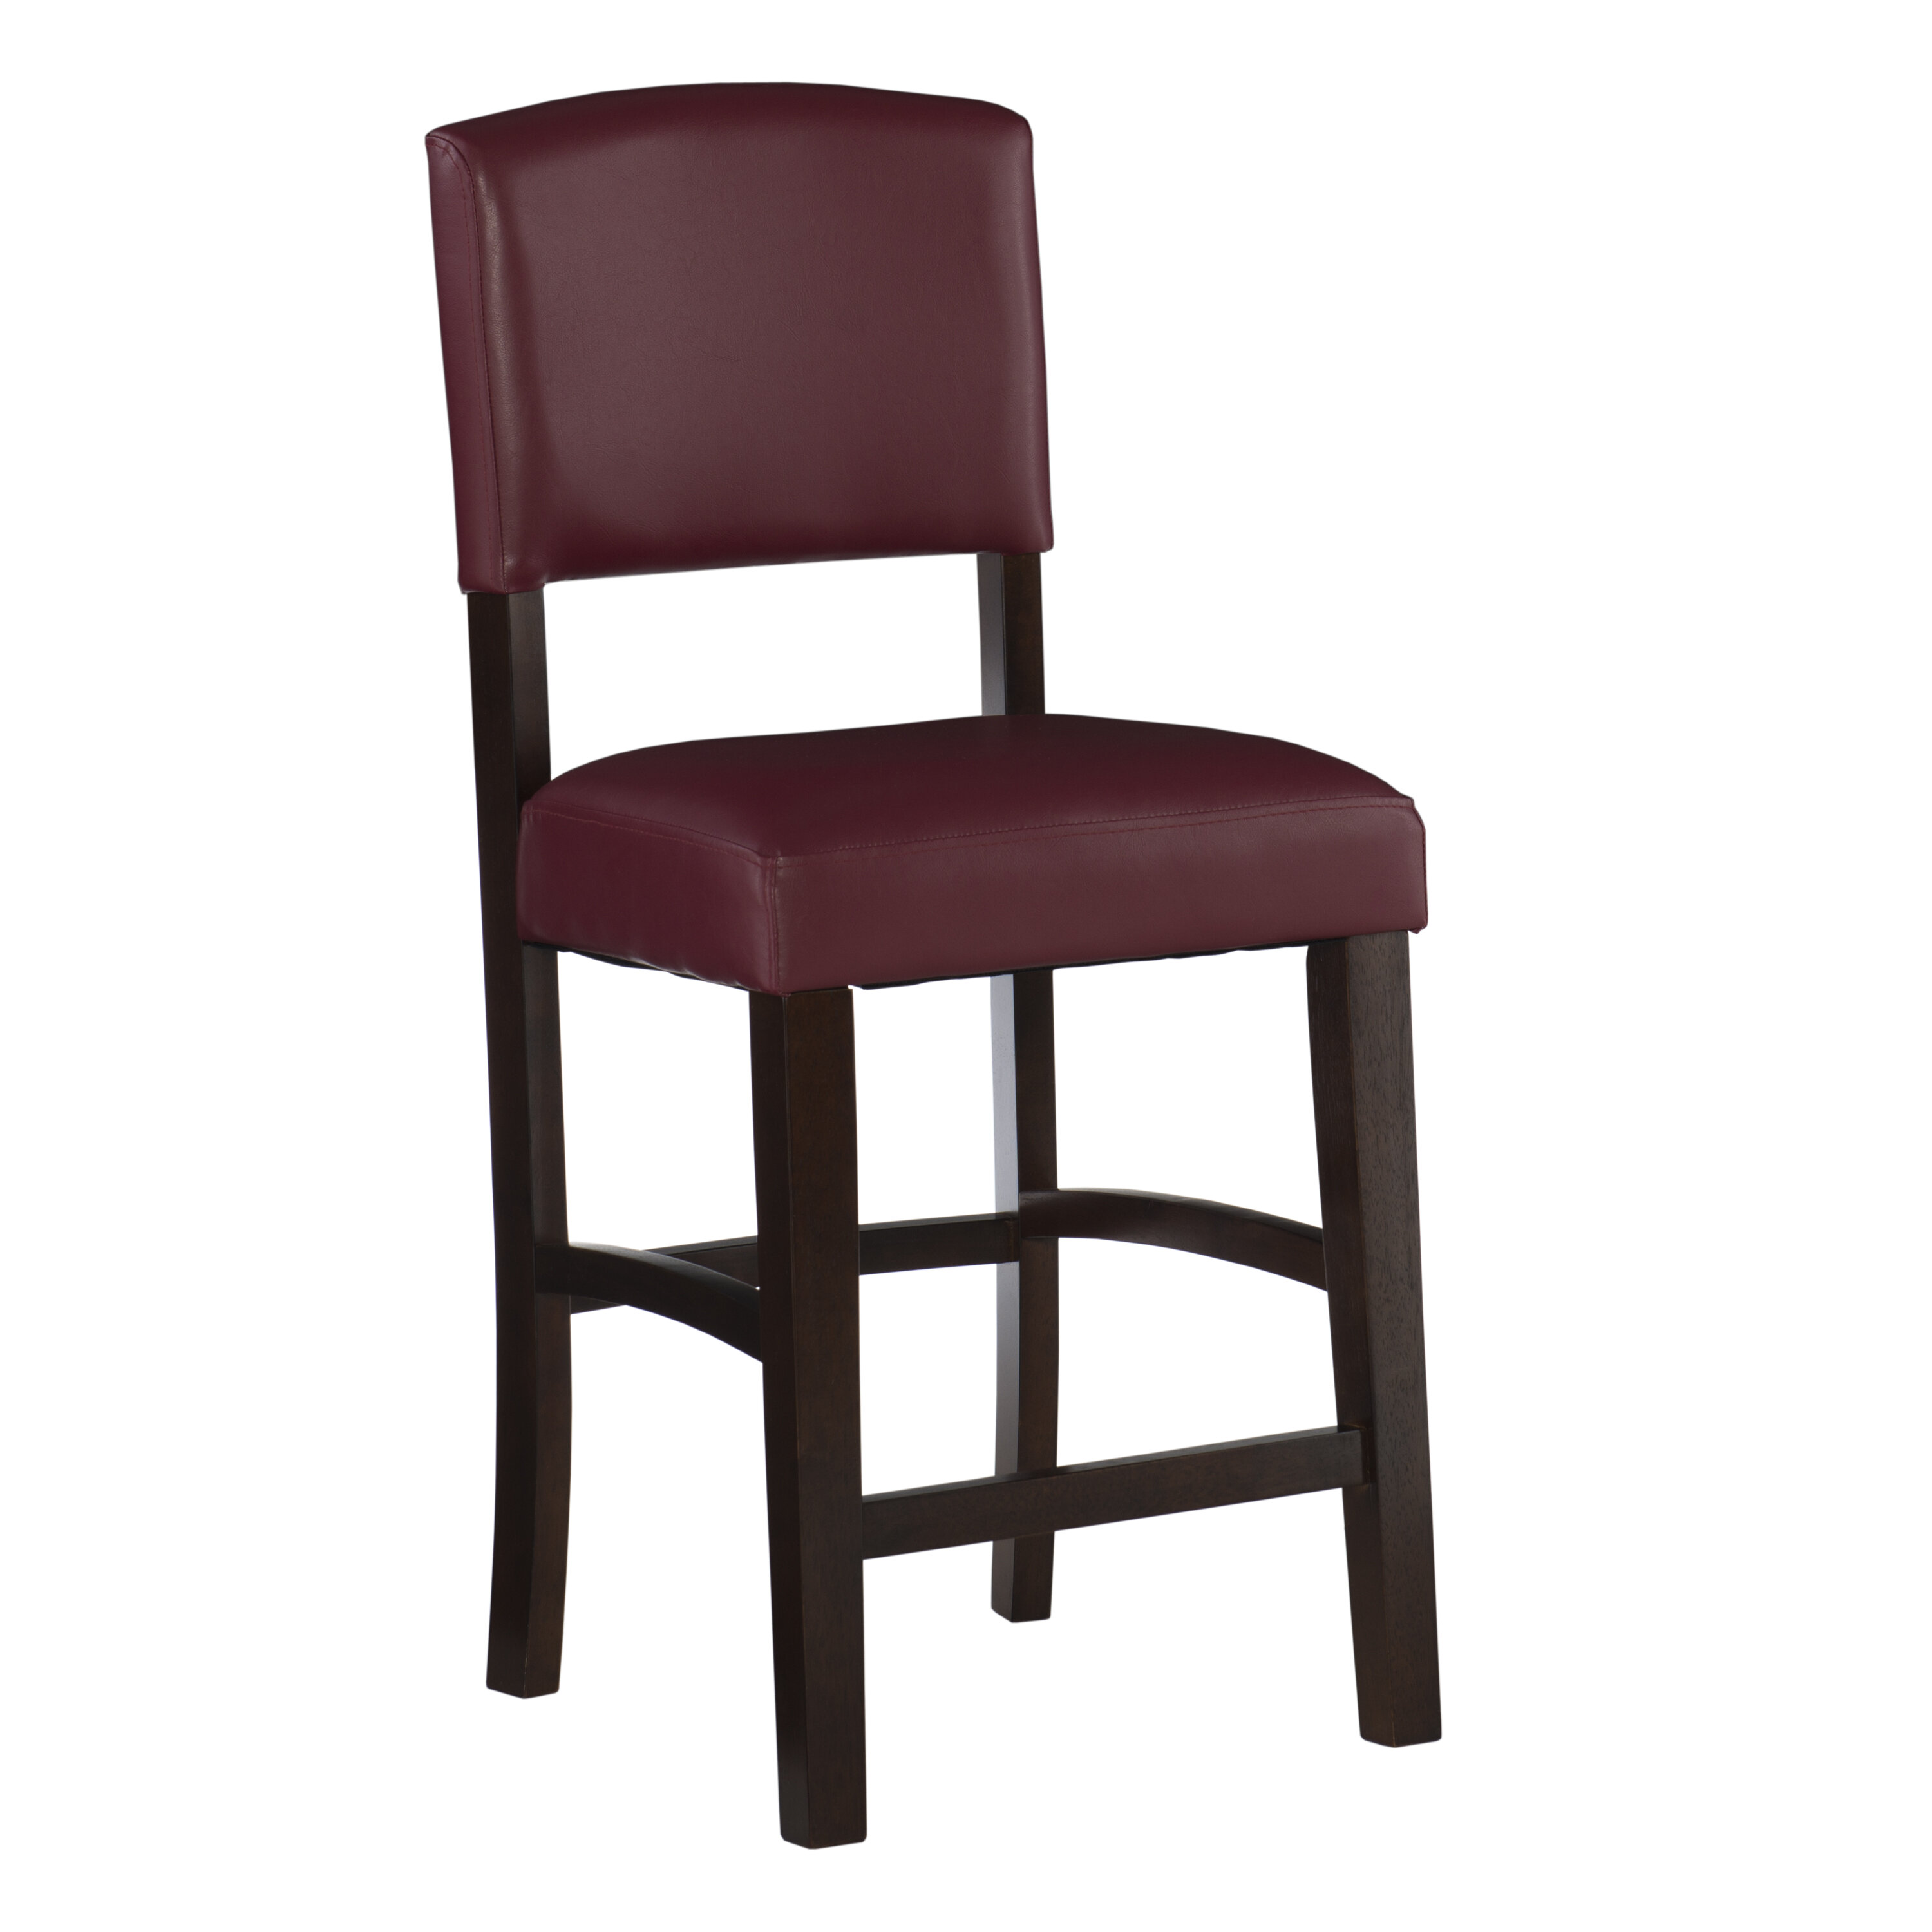 Picture of: Red Bar Stools Counter Stools You Ll Love In 2020 Wayfair